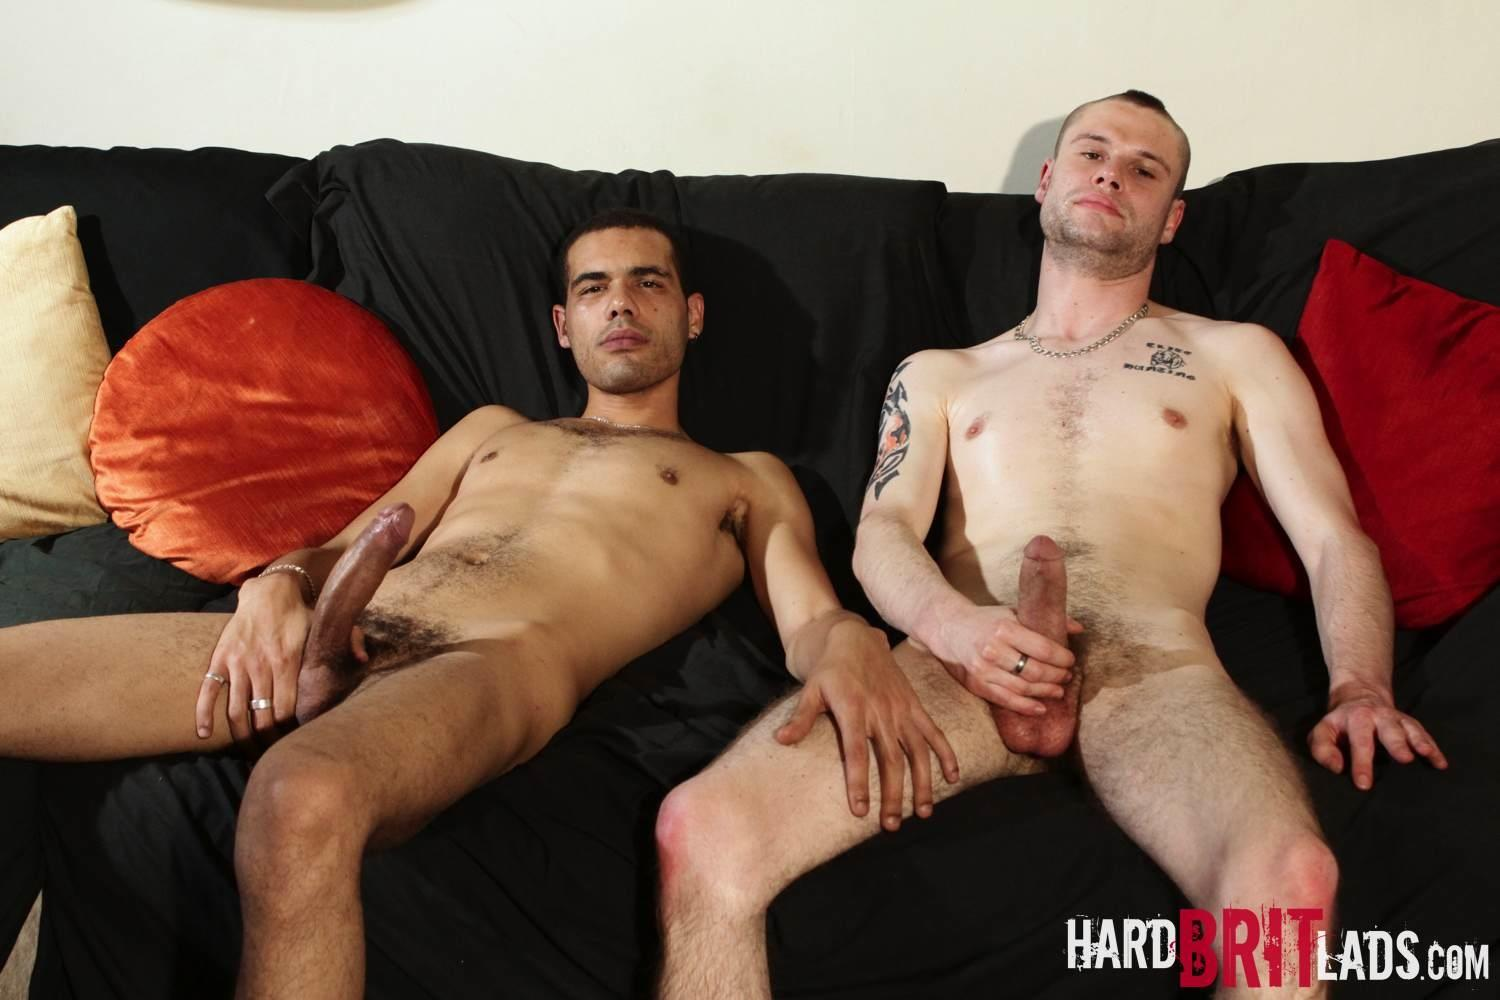 Hard Brit Lads Shaun Jones and Jay T Bisexual Skinhead Sucking First Big Cock Amateur Gay Porn 19 Hung Amateur Bisexual British Skinhead Sucks His First Cock Ever